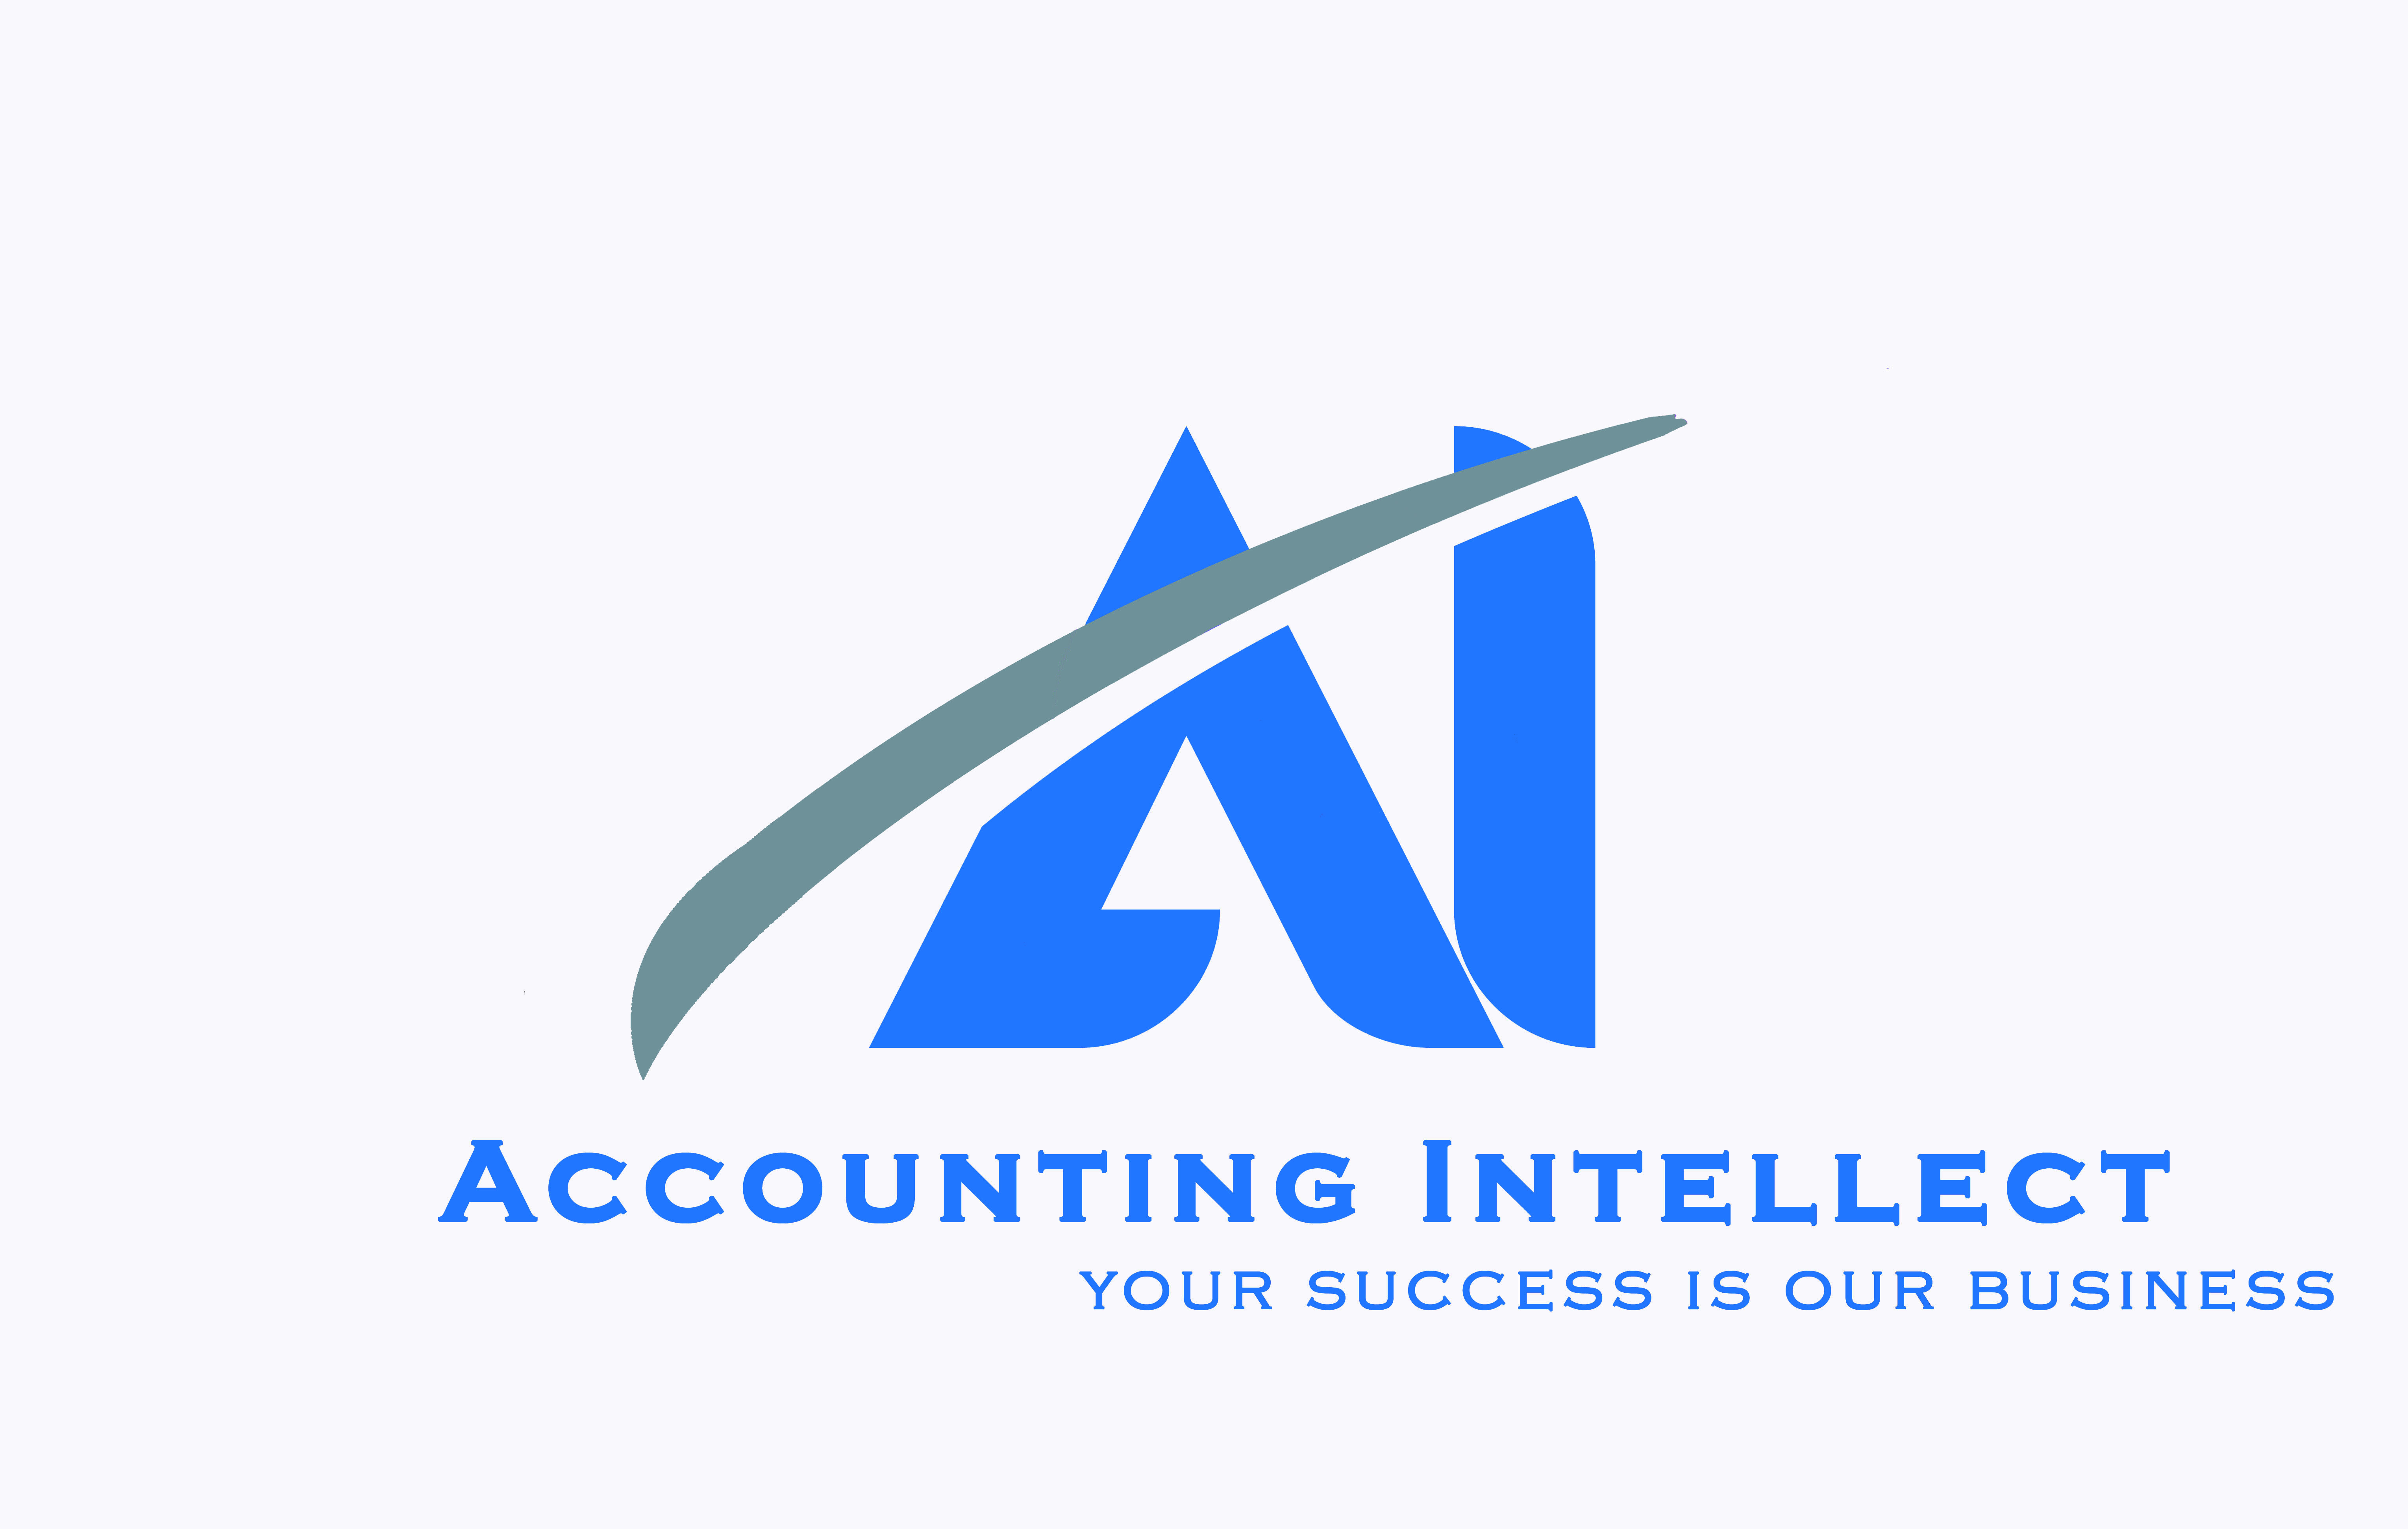 Accounting Intellect